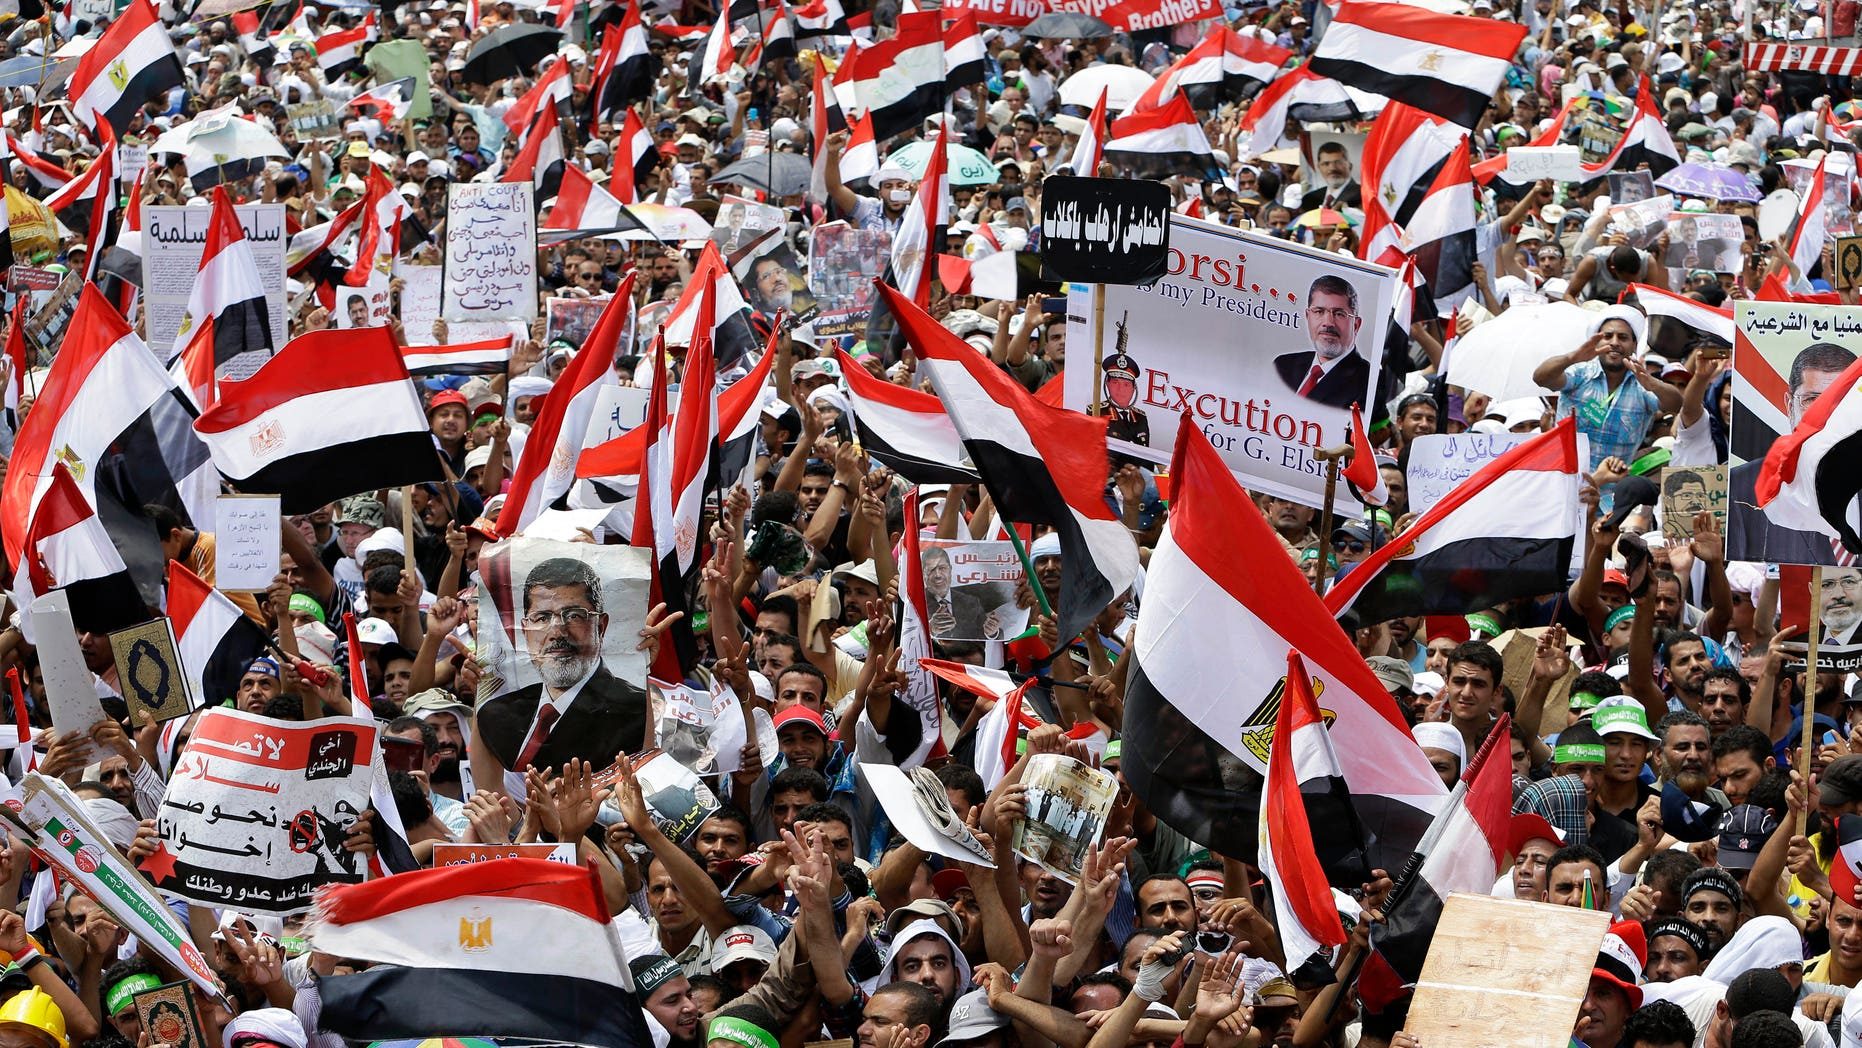 July 19, 2013 - Supporters of Egypt's ousted President Mohammed Morsi wave their national flags during a demonstration where protesters have installed their camp and hold their daily rally, at Nasr City, Cairo, Egypt.